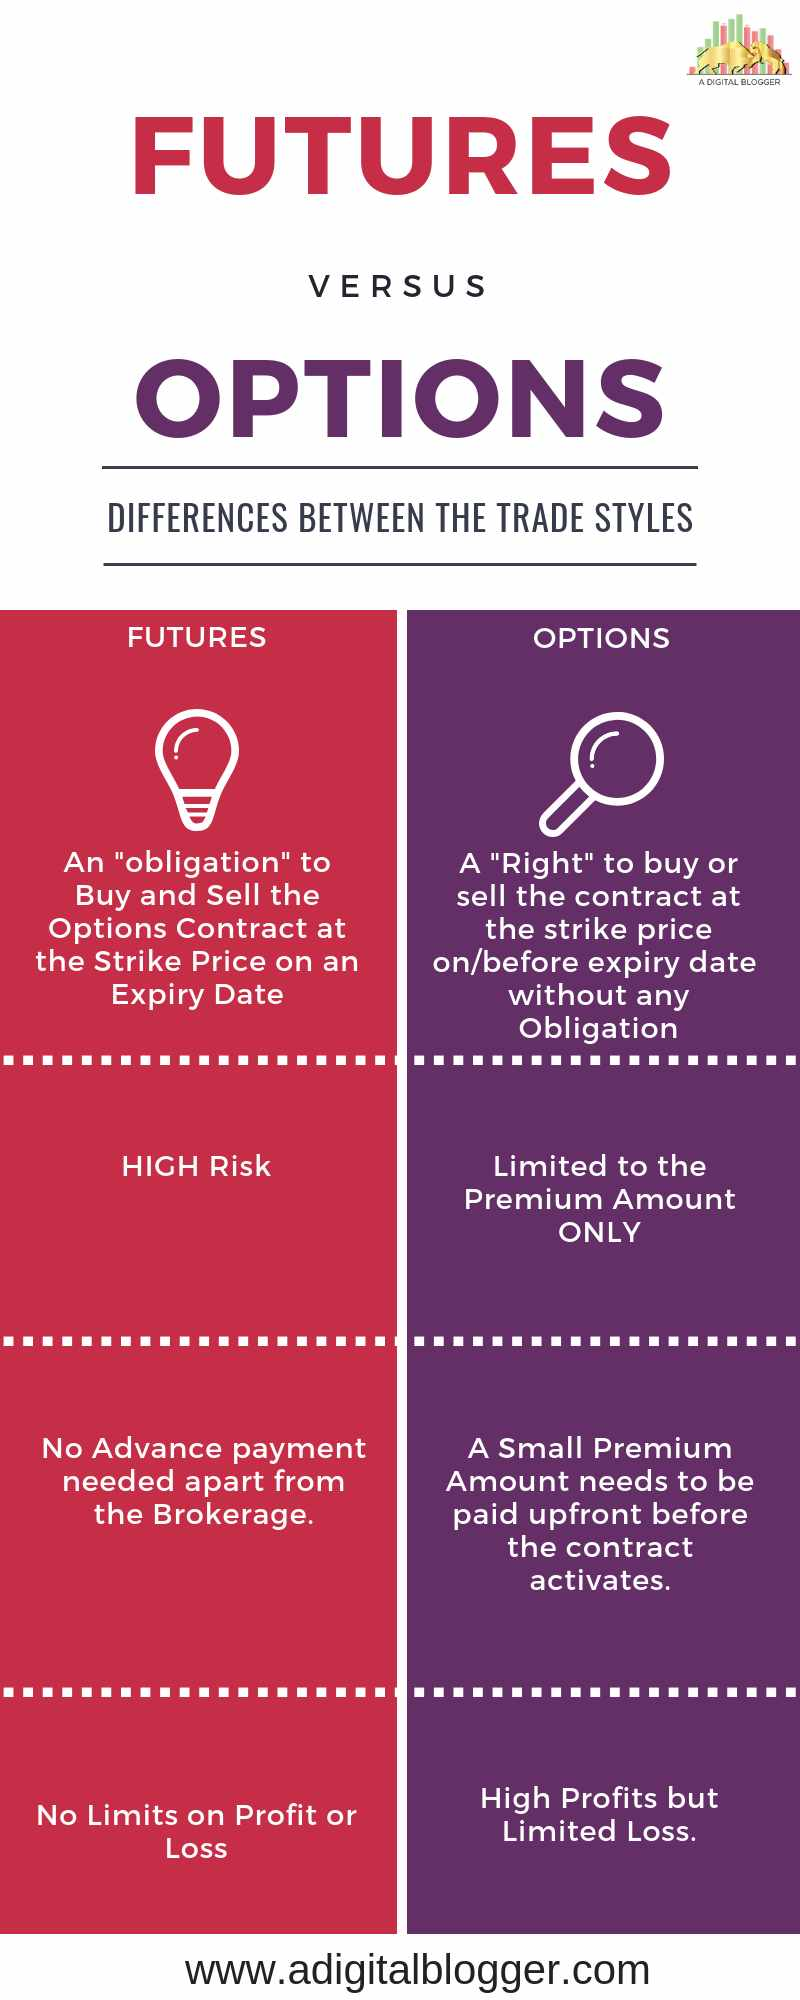 Difference Between Futures and Options